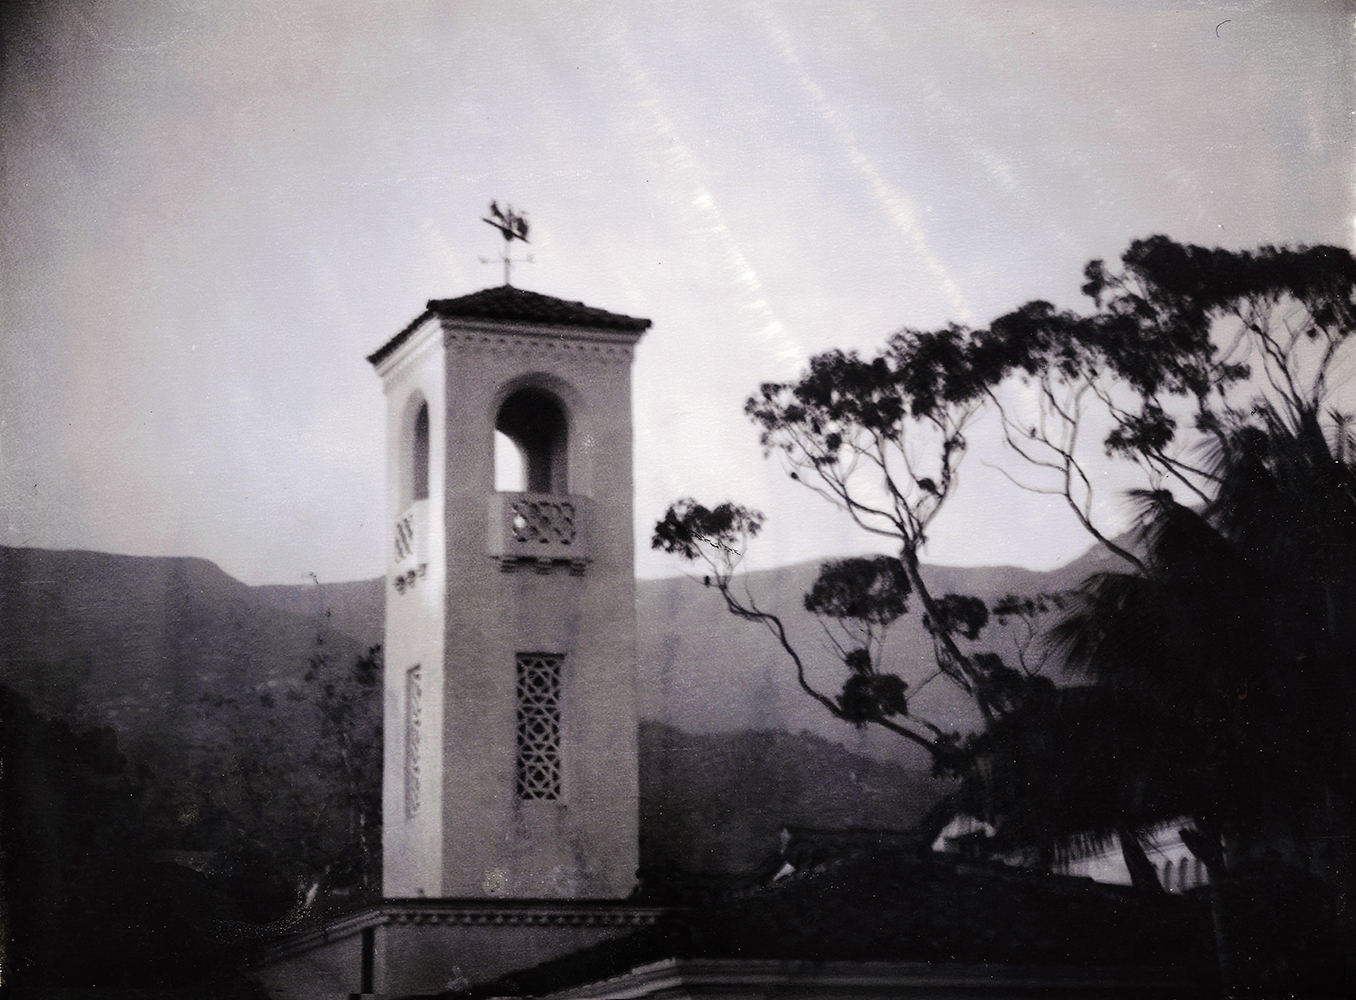 Built in the 1920s as the community's new and modern fire station it serves now as the town hall and an historic landmark. Polaroid T-55 capture -